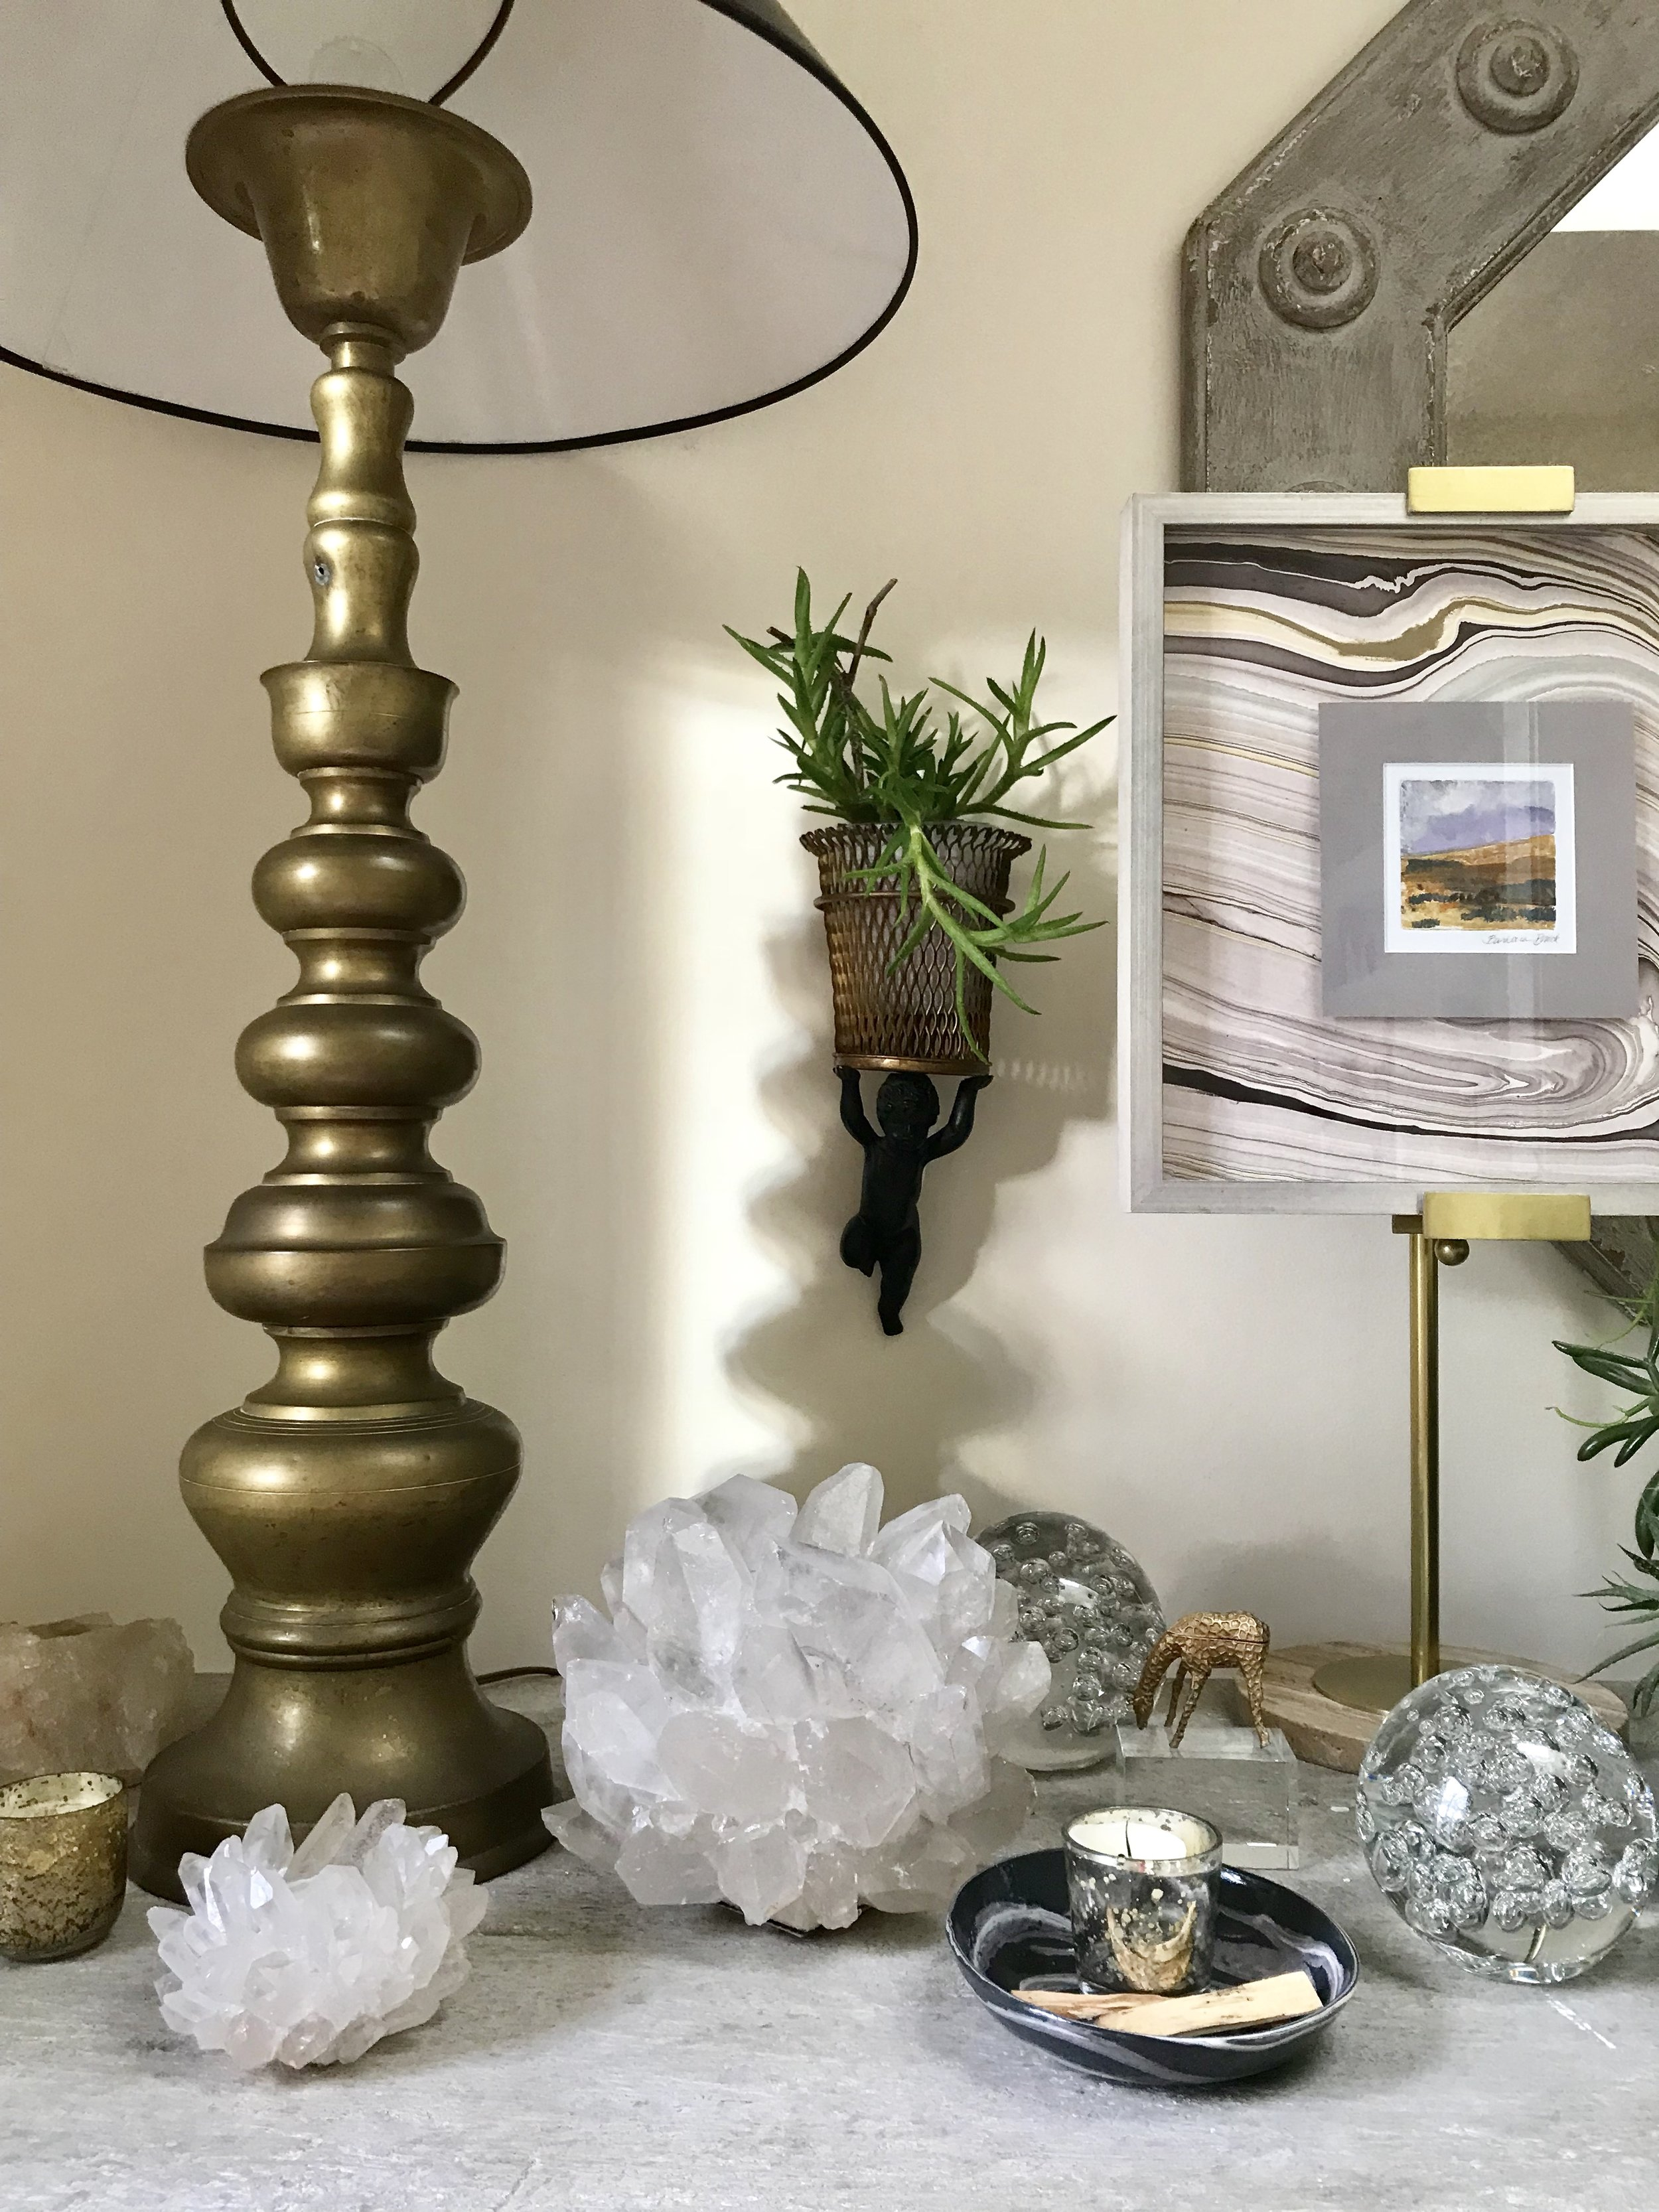 SCW Interiors Life Hacks Blog Post : The Healing Powers of Crystals. This is a special space in my home packed with all of my favorite things that inspire me.